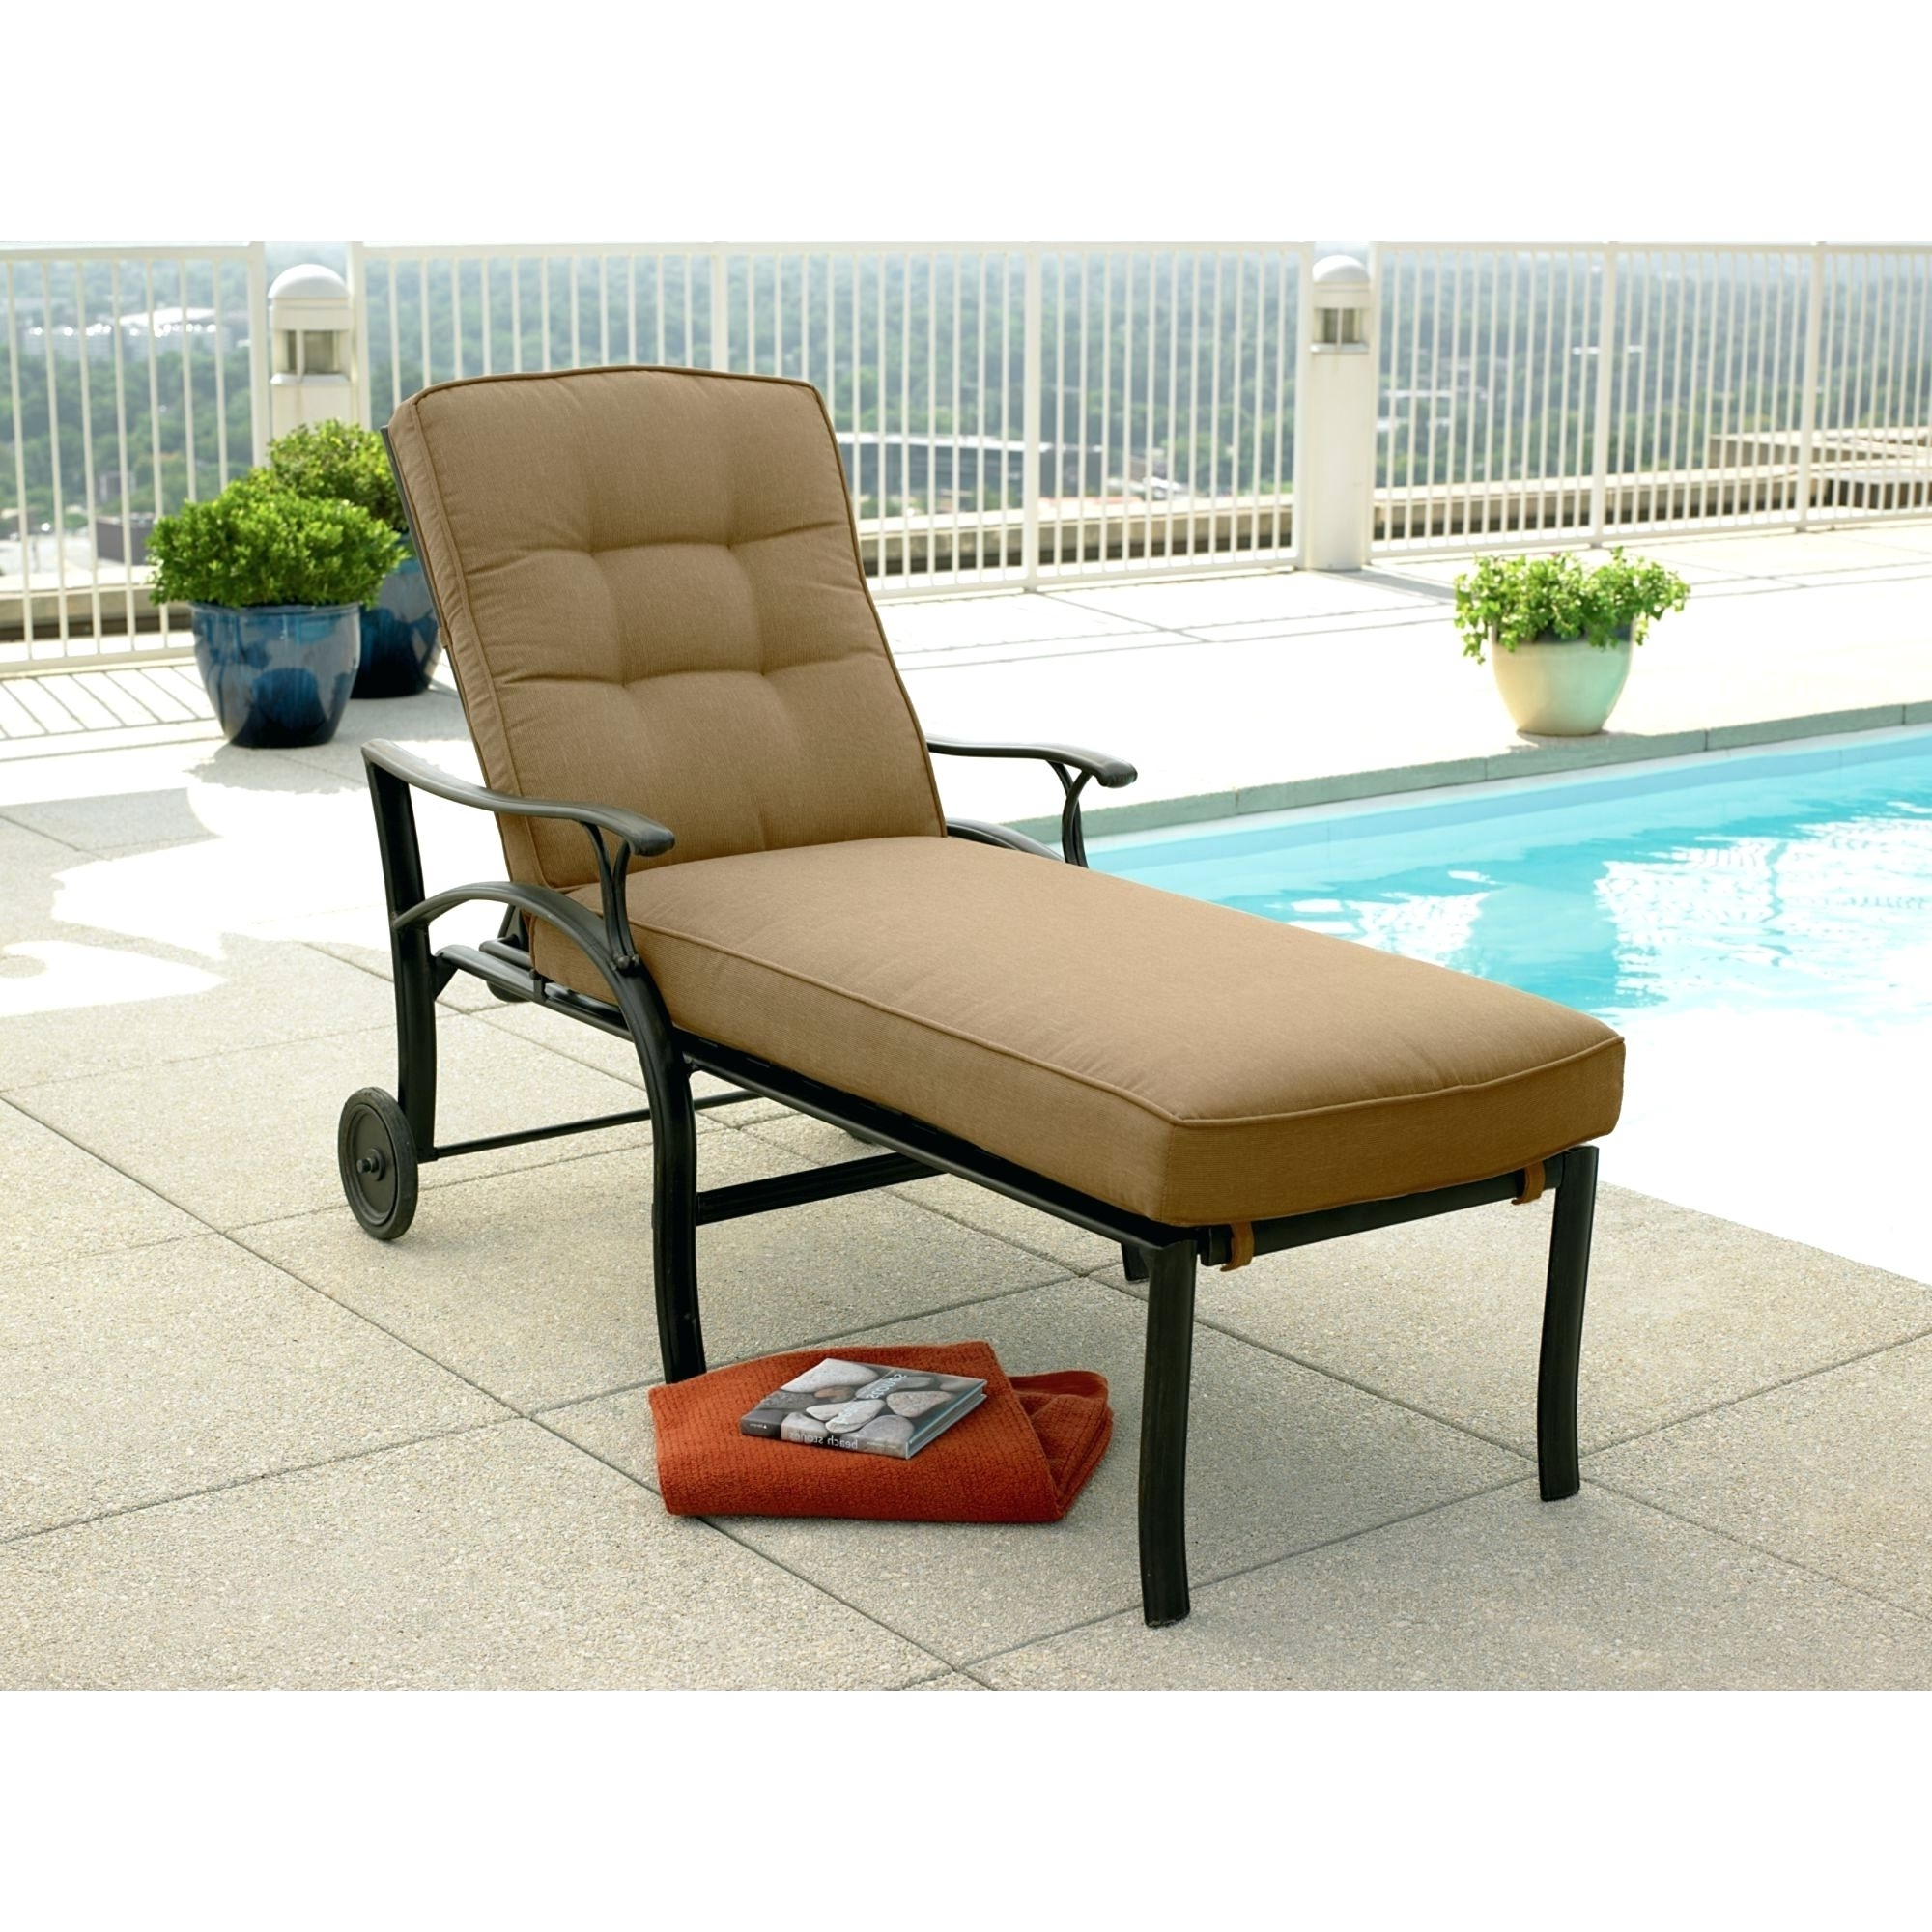 Pool Deck Chaise Lounge Chairs • Lounge Chairs Ideas Intended For 2018 Chaise Lounge Chairs For Pool Area (View 4 of 15)